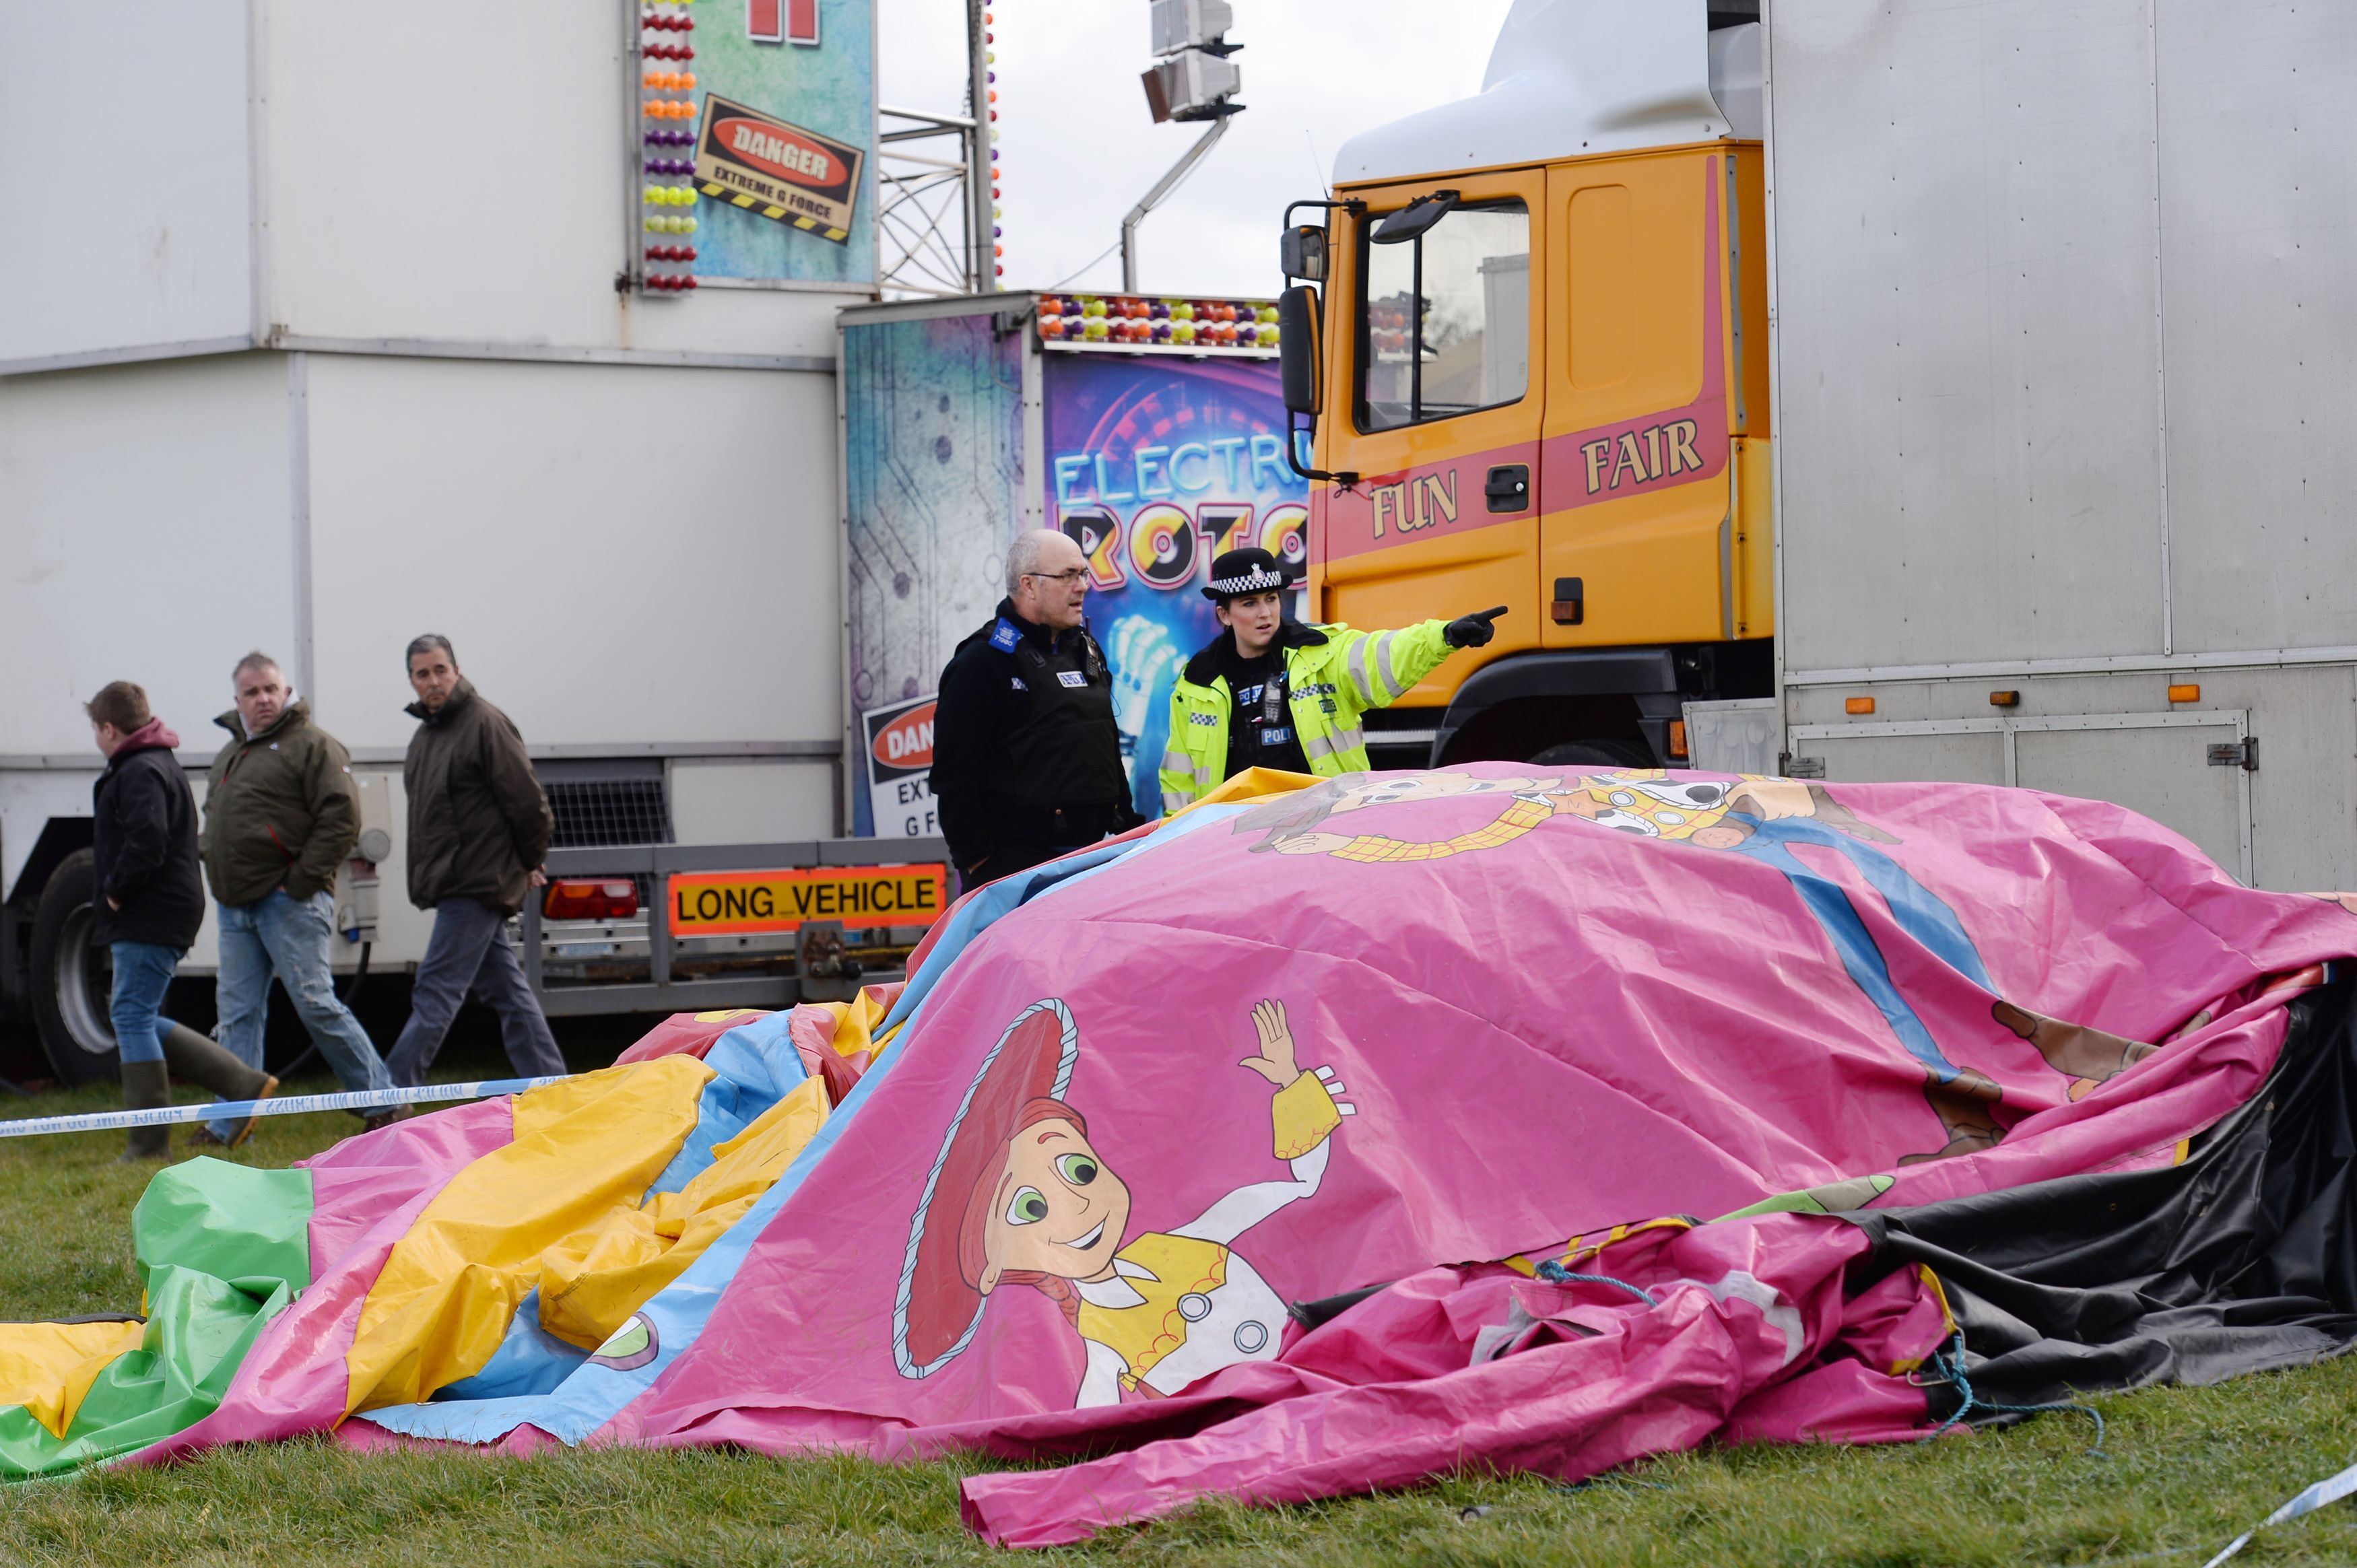 Police and forensic officers attend the scene where a seven-year old girl died after she was blown by the wind about 150 metres on a bouncy castle on March 27, 2016.